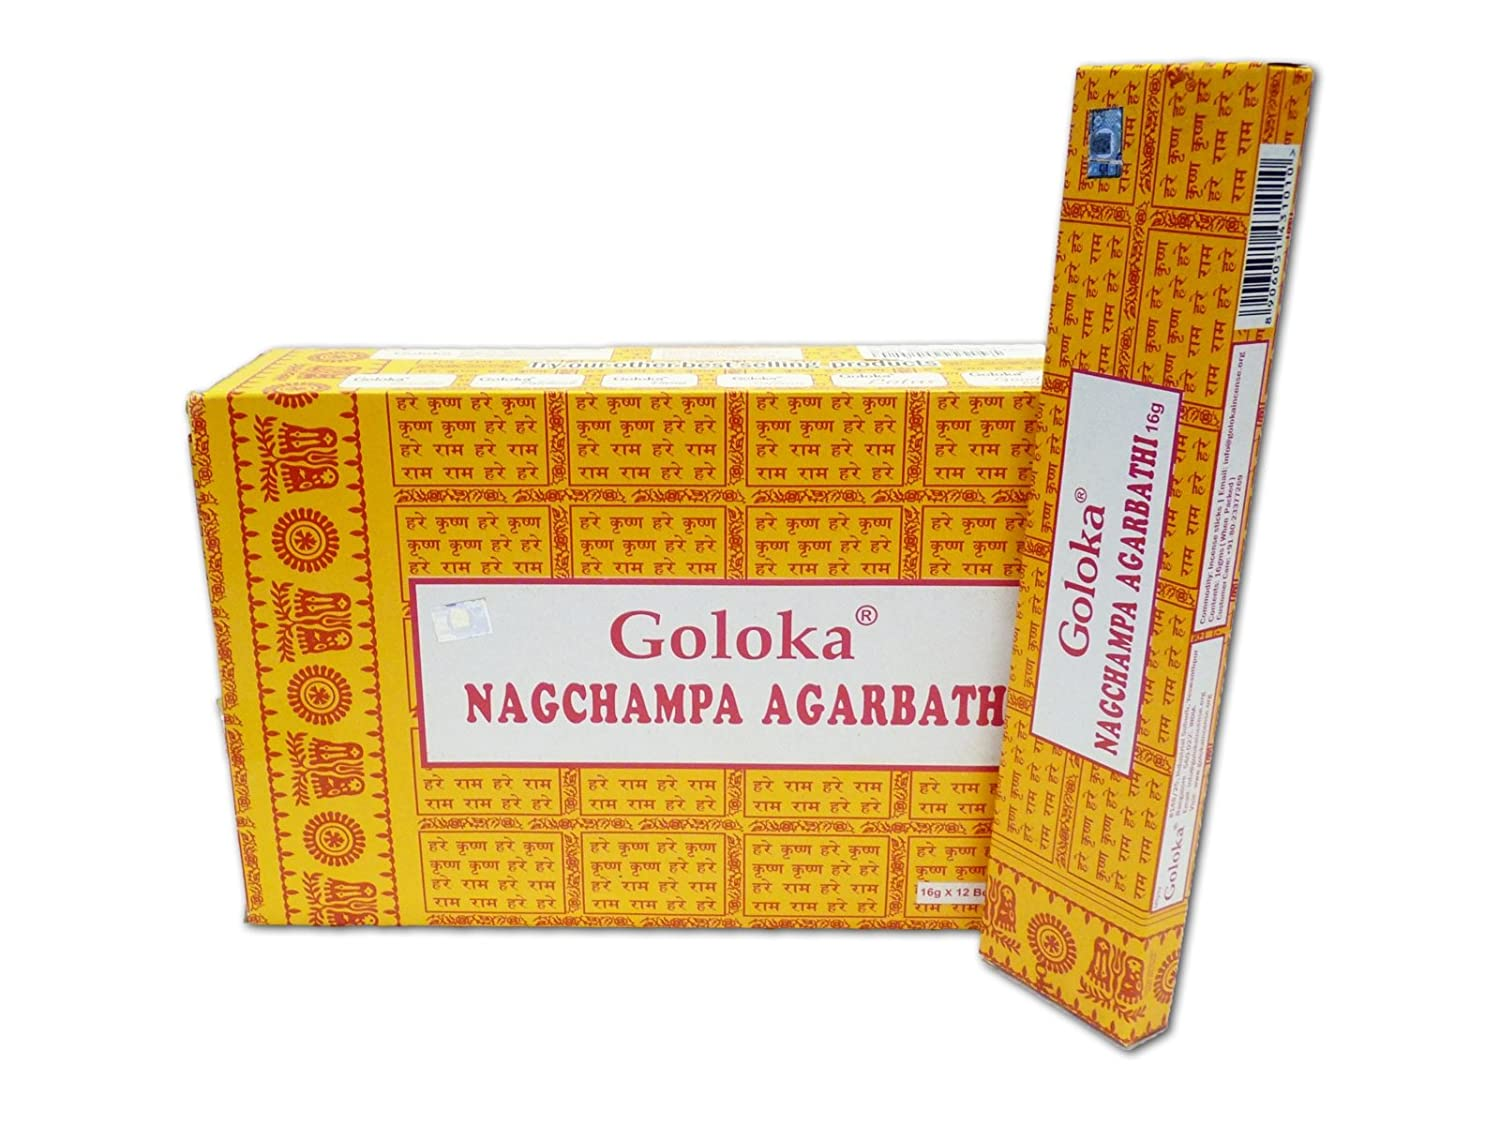 Goloka Nag Champa Incense Sticks (16 grms) - 12 Boxes